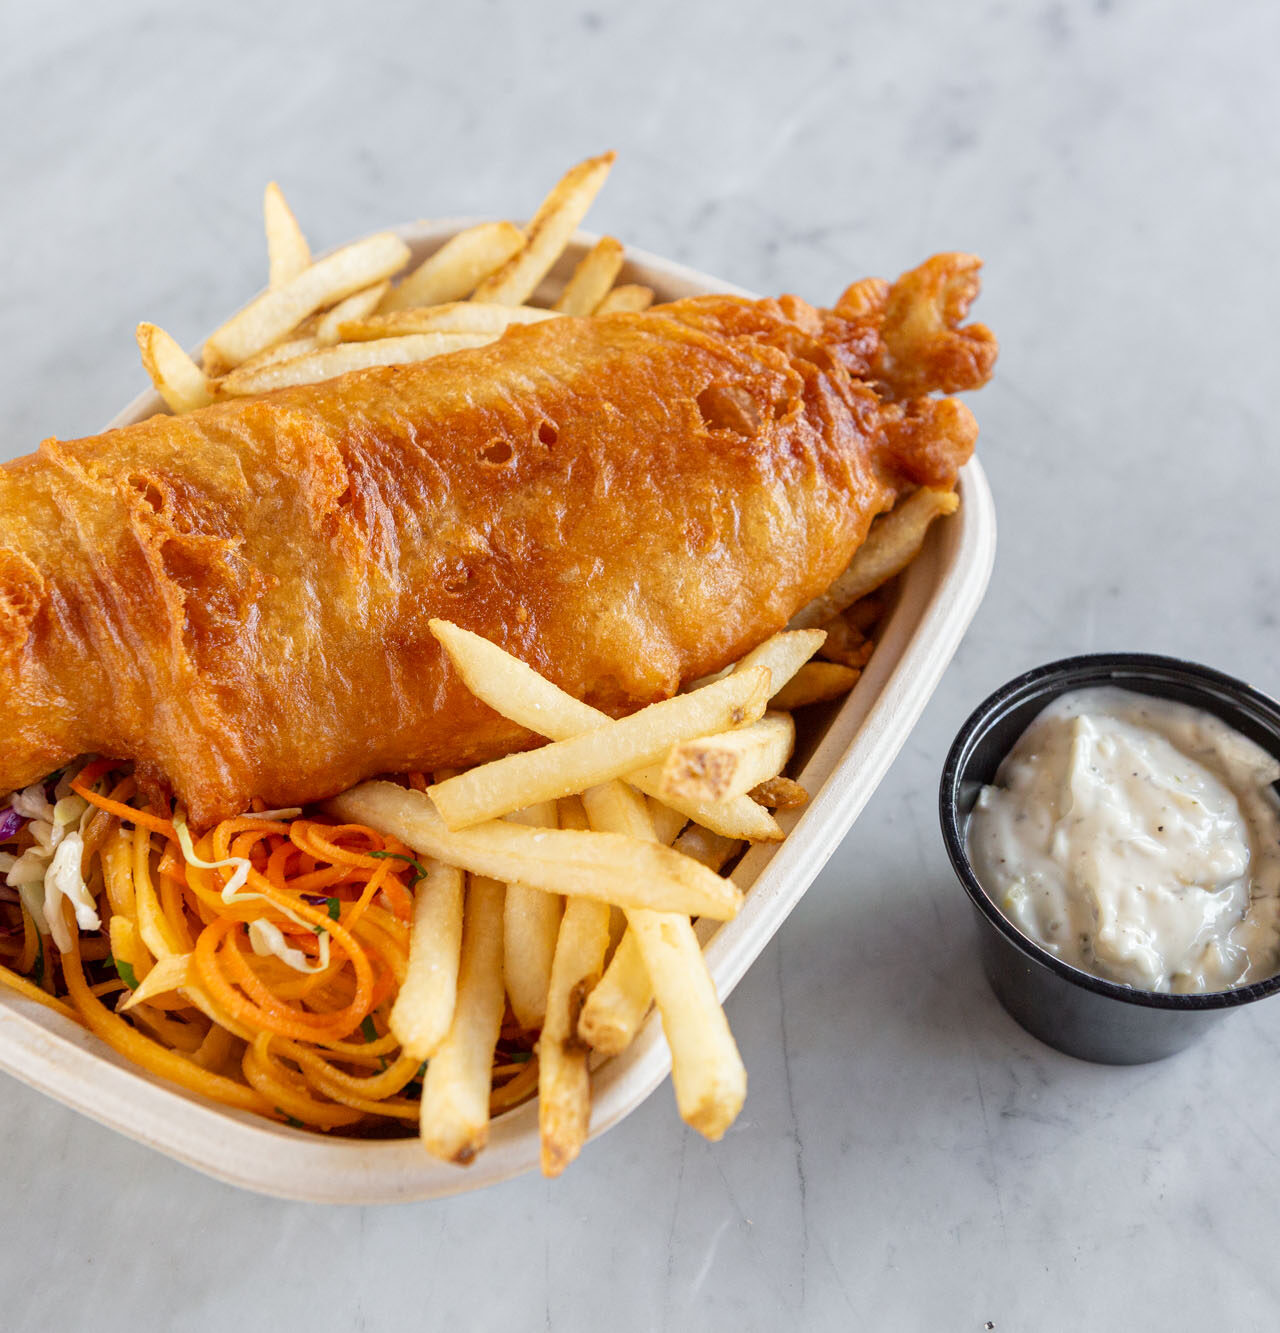 Luma's Fish & Chips